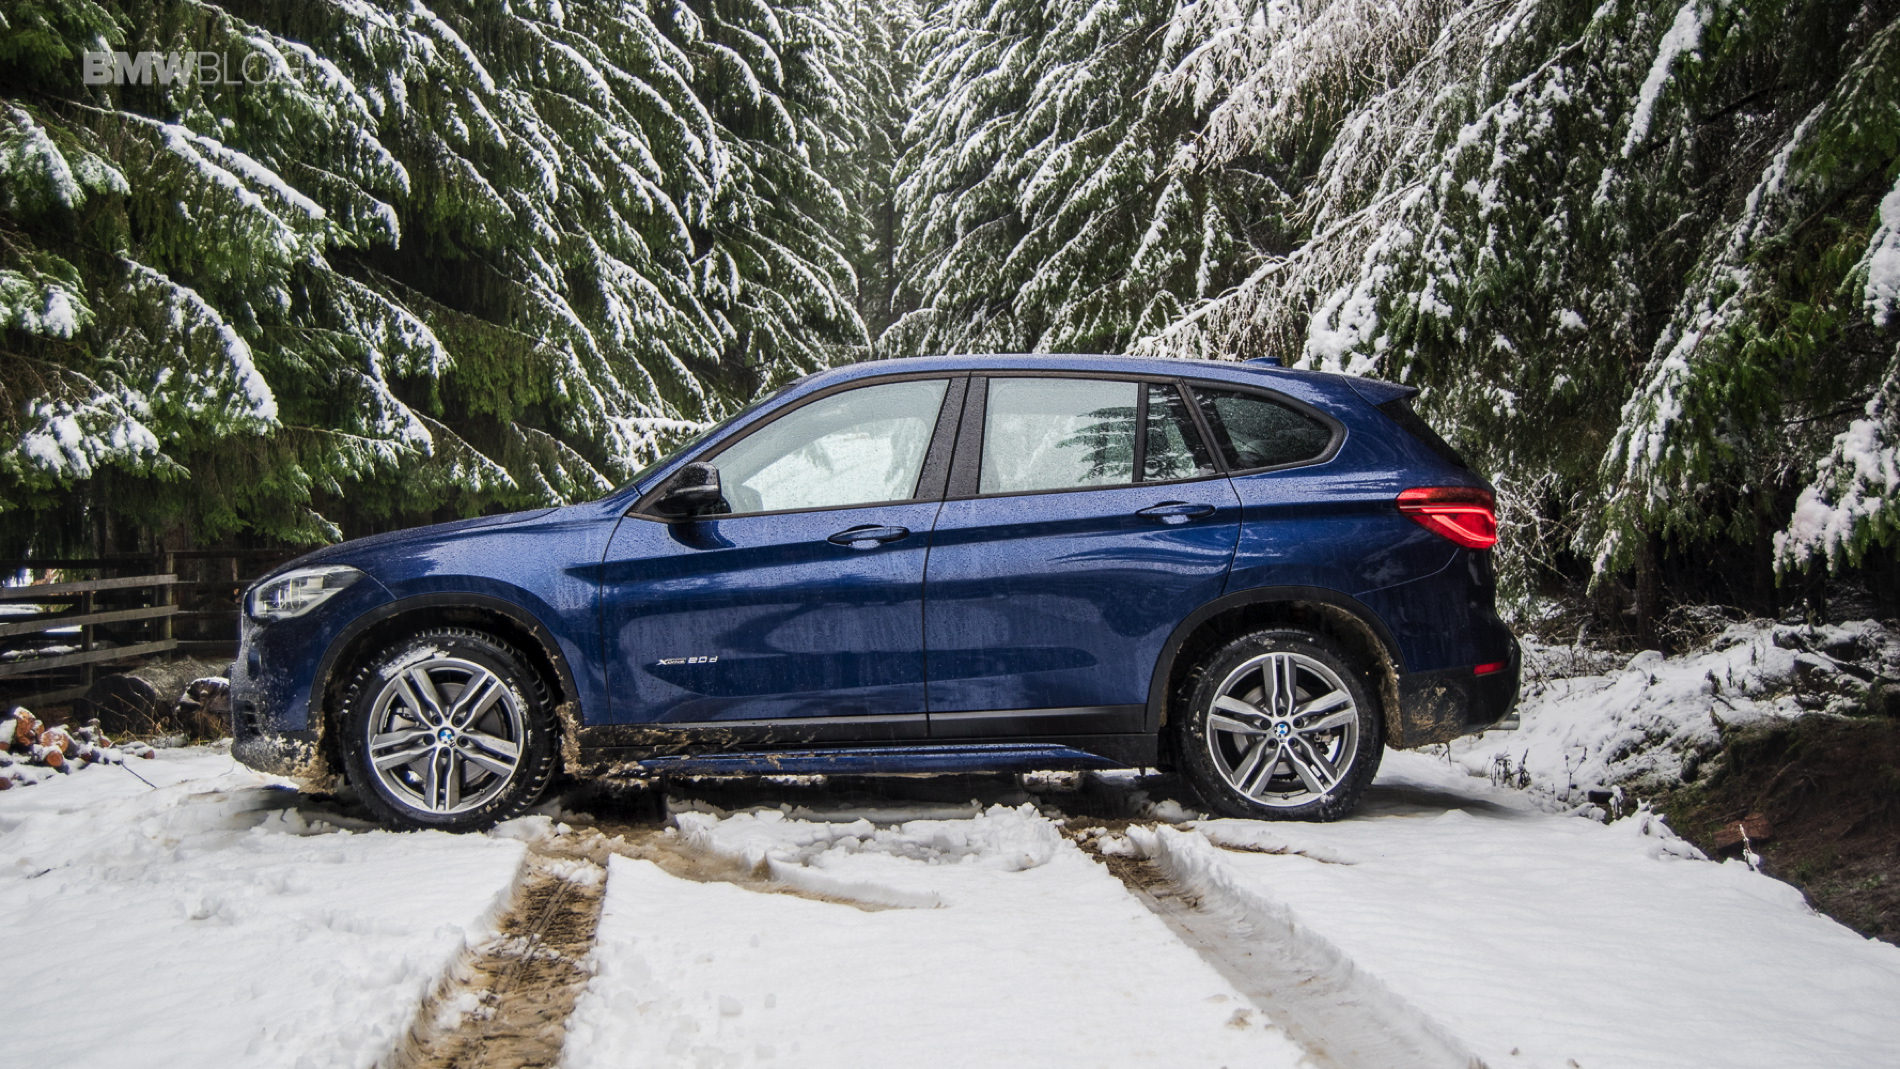 2016 Bmw X1 Xdrive20d Test Drive 7 750x422